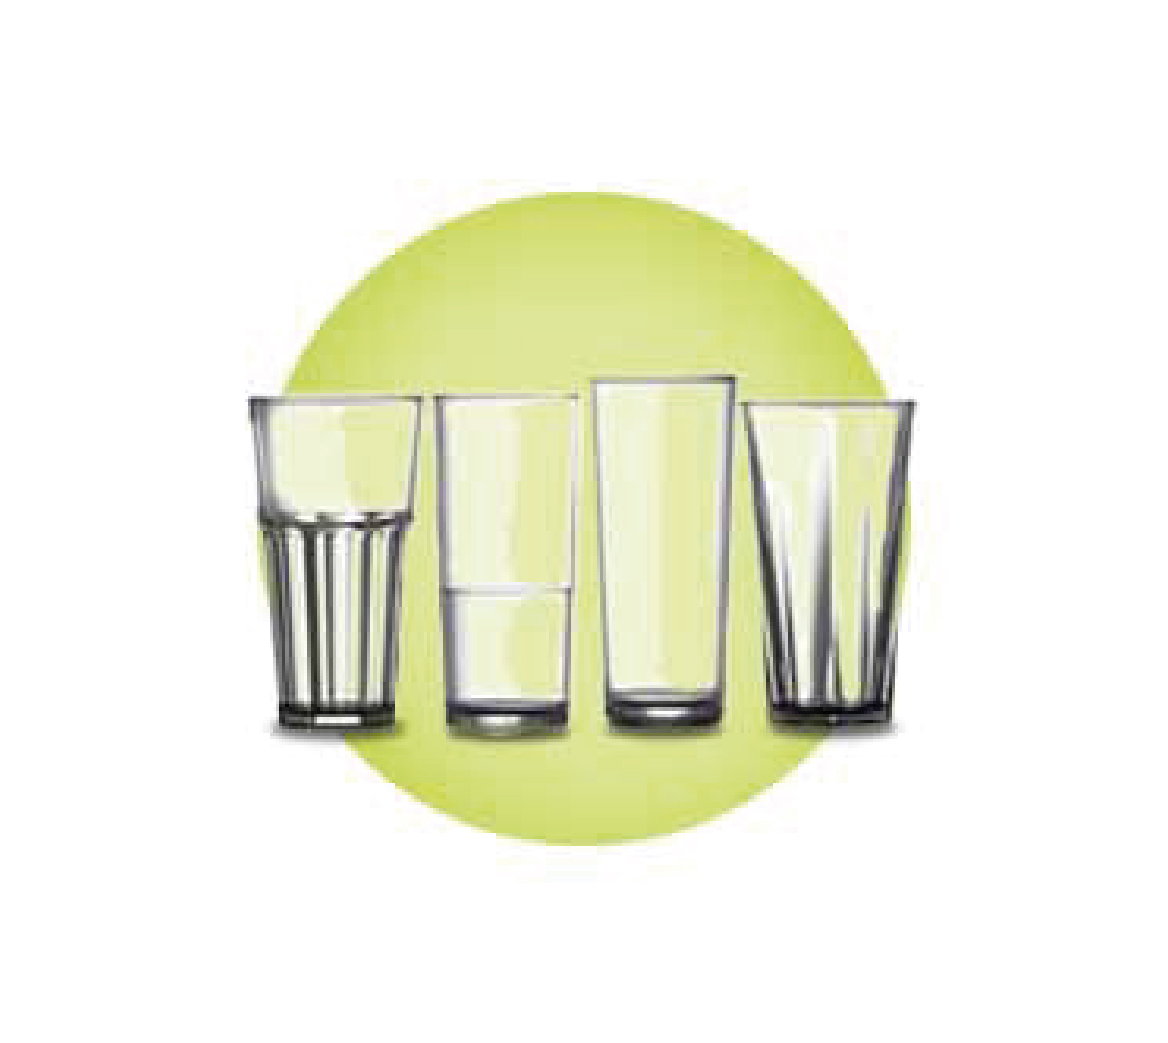 Elite Nucleated Glasses - Polycarbonate